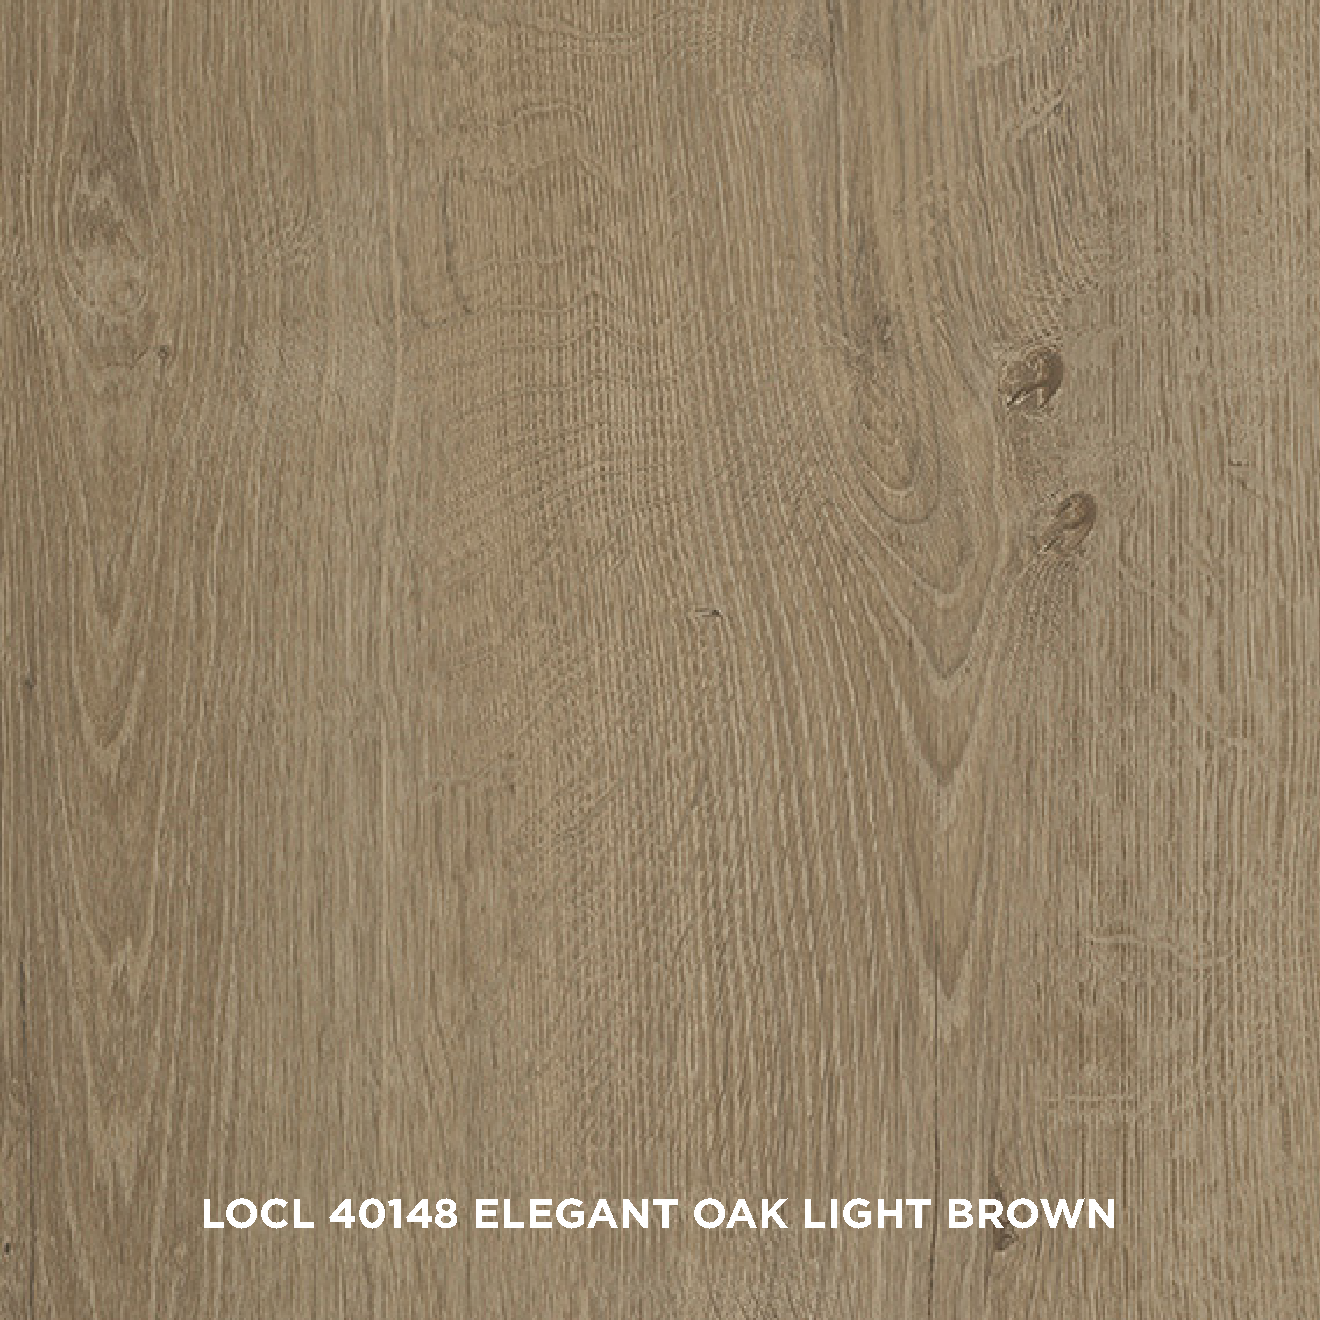 LOCL 40148 ELEGANT OAK LIGHT BROWN